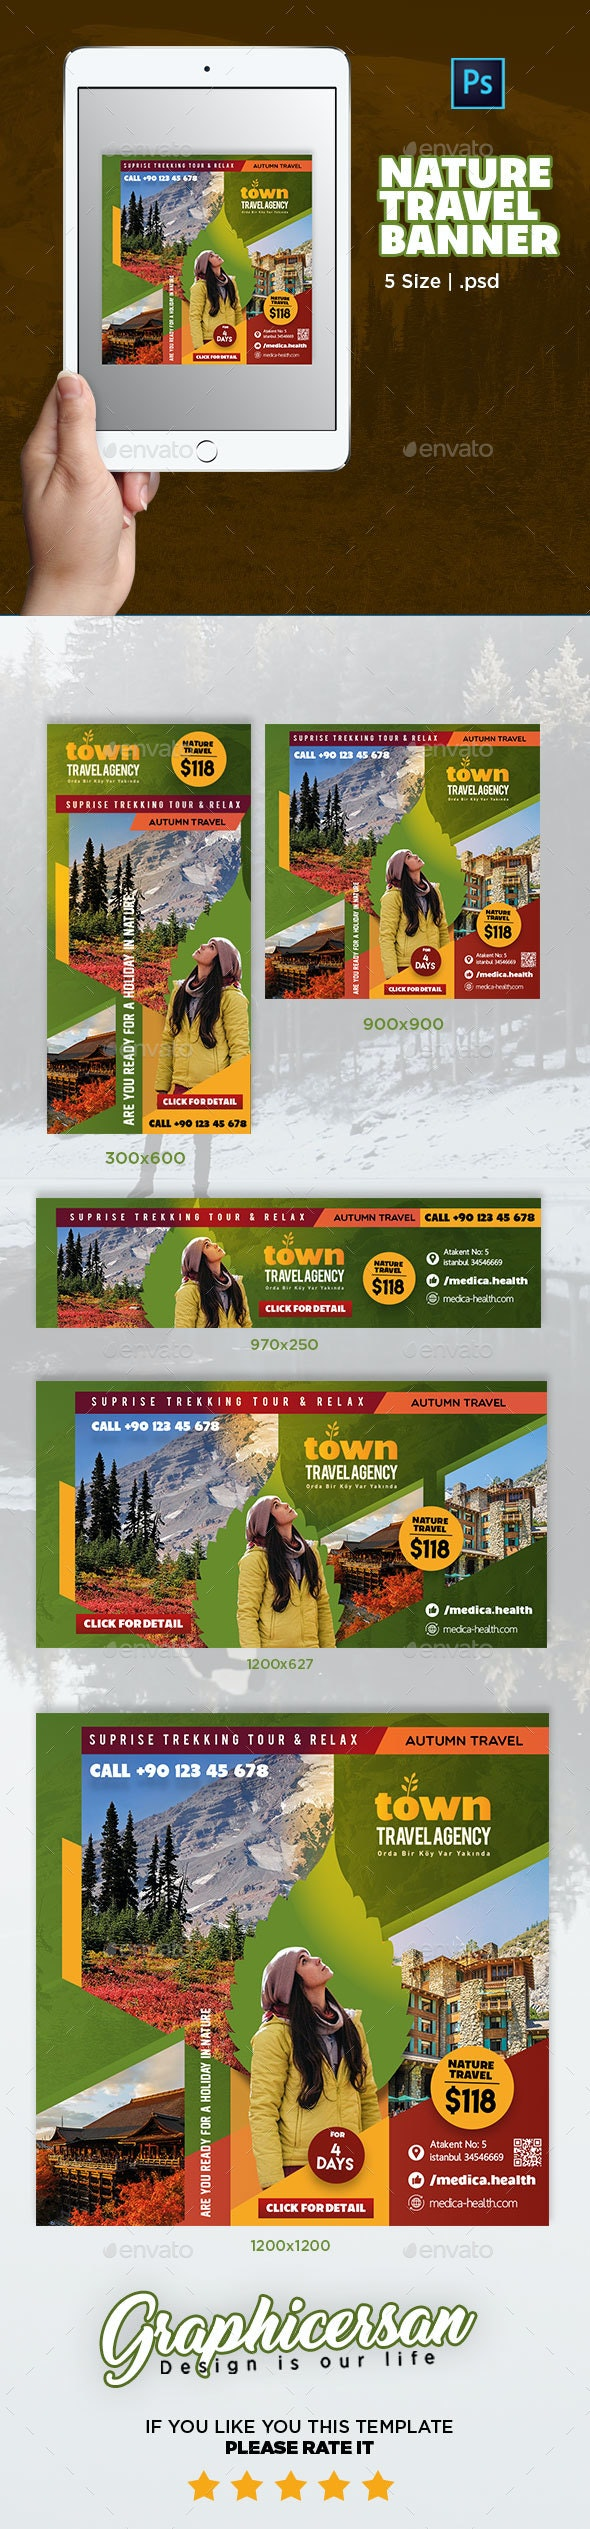 Nature Travel Banner Template - Banners & Ads Web Elements